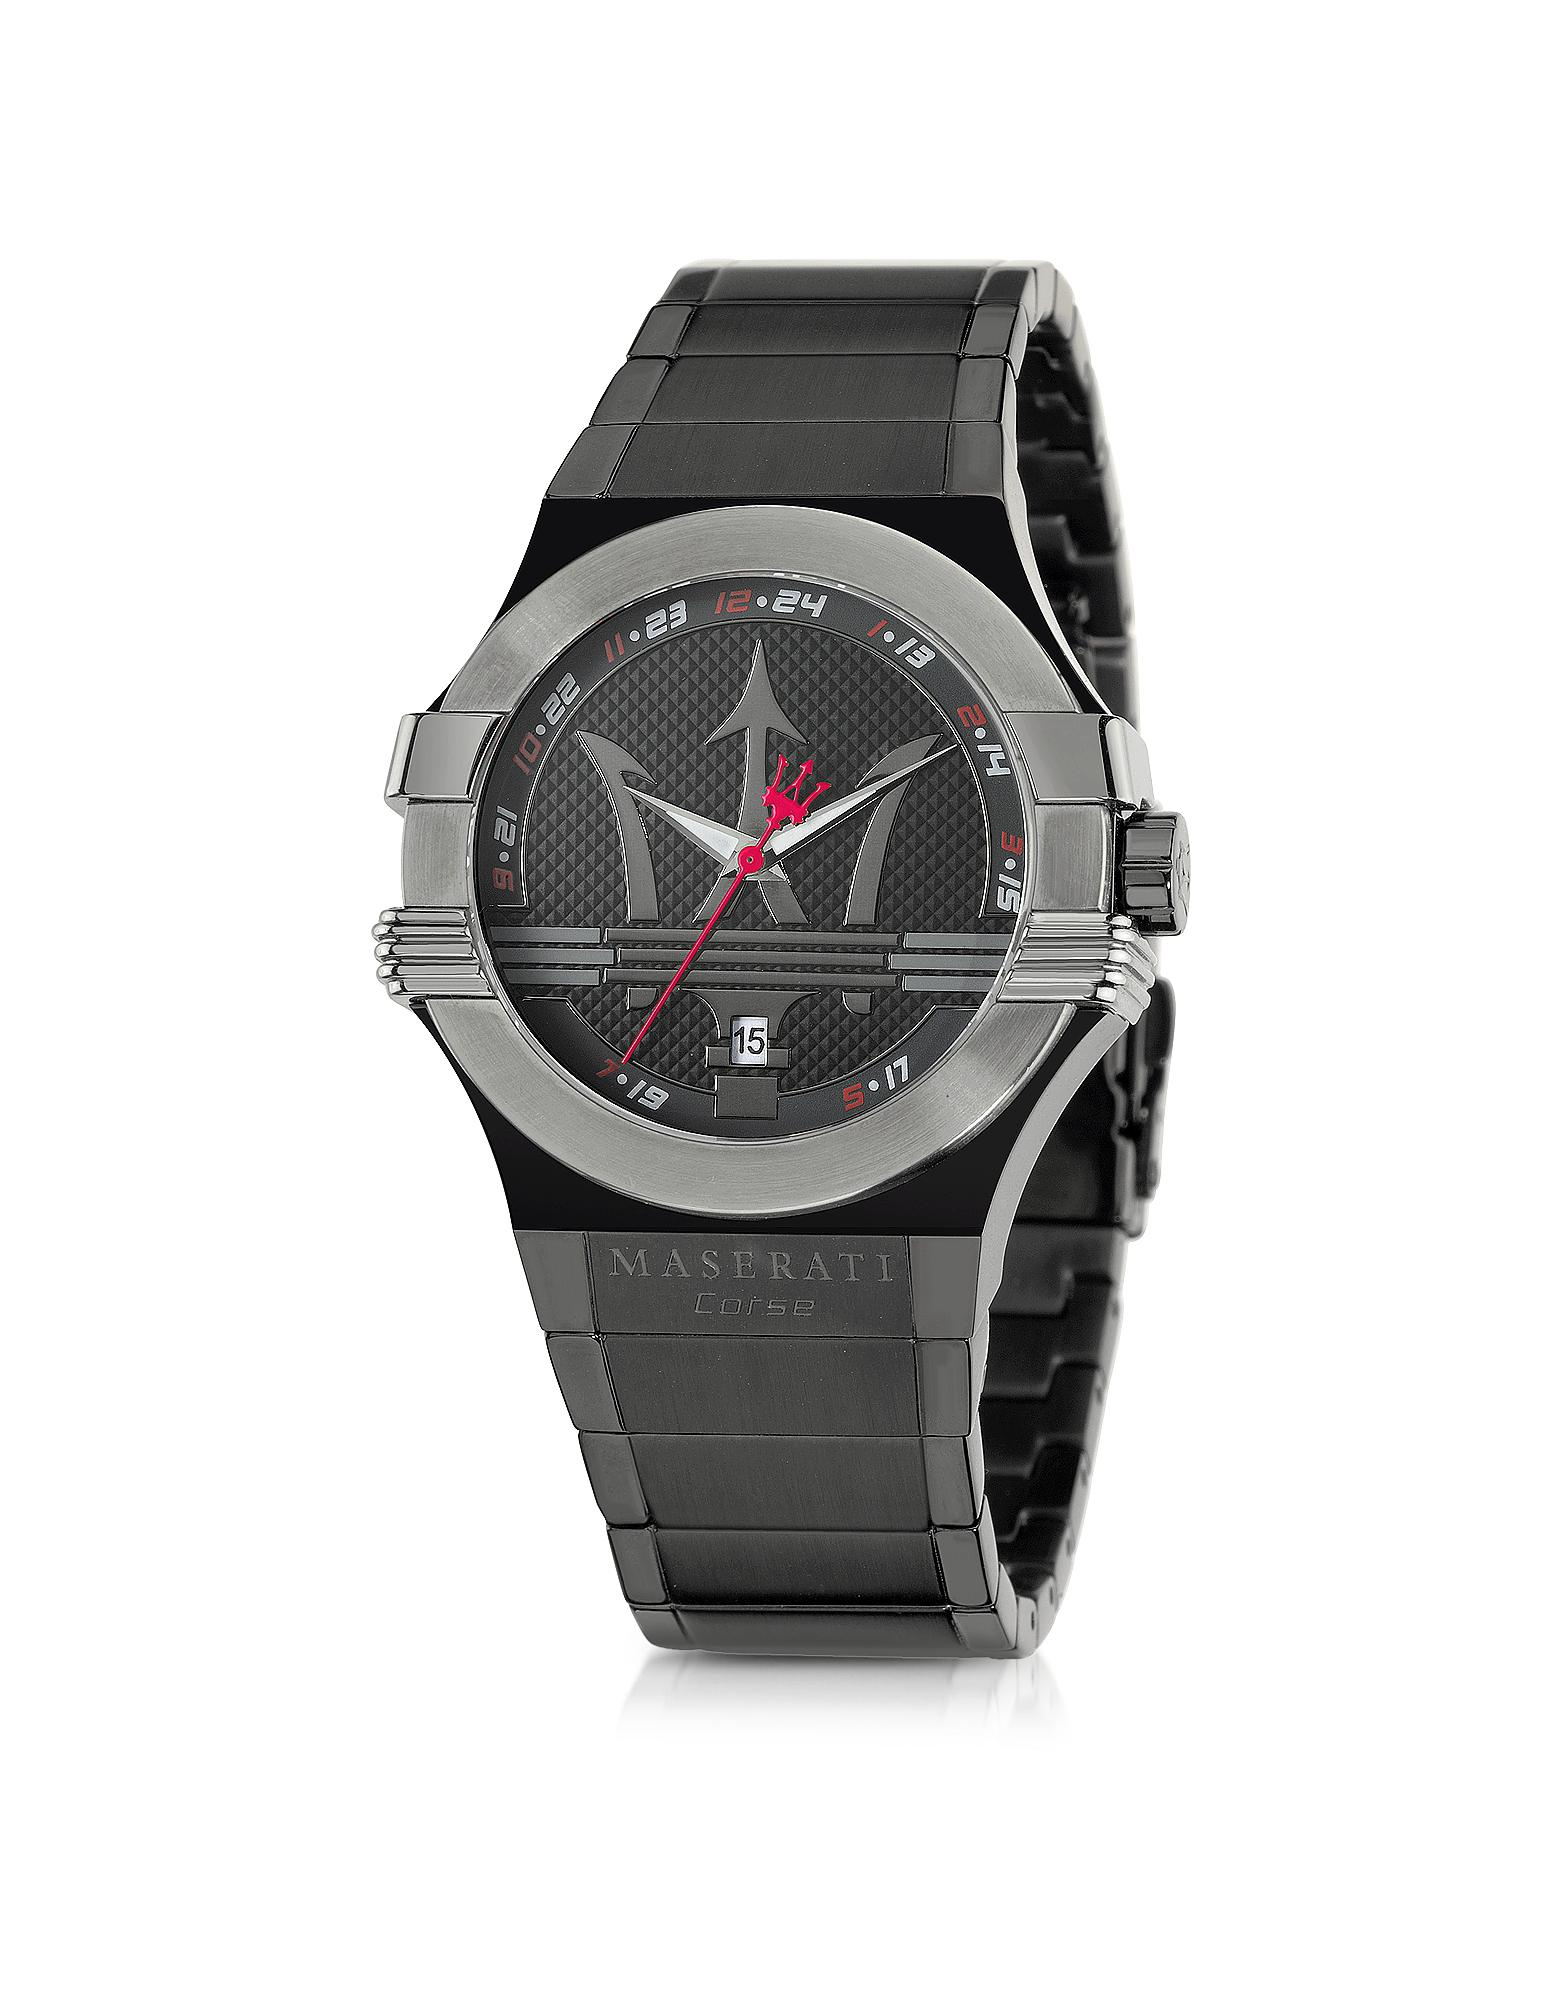 product hydrocarbon swiss engineer dial men watch overstock free black watches jewelry strap s shipping today mens bk rubber automatic ball pvd